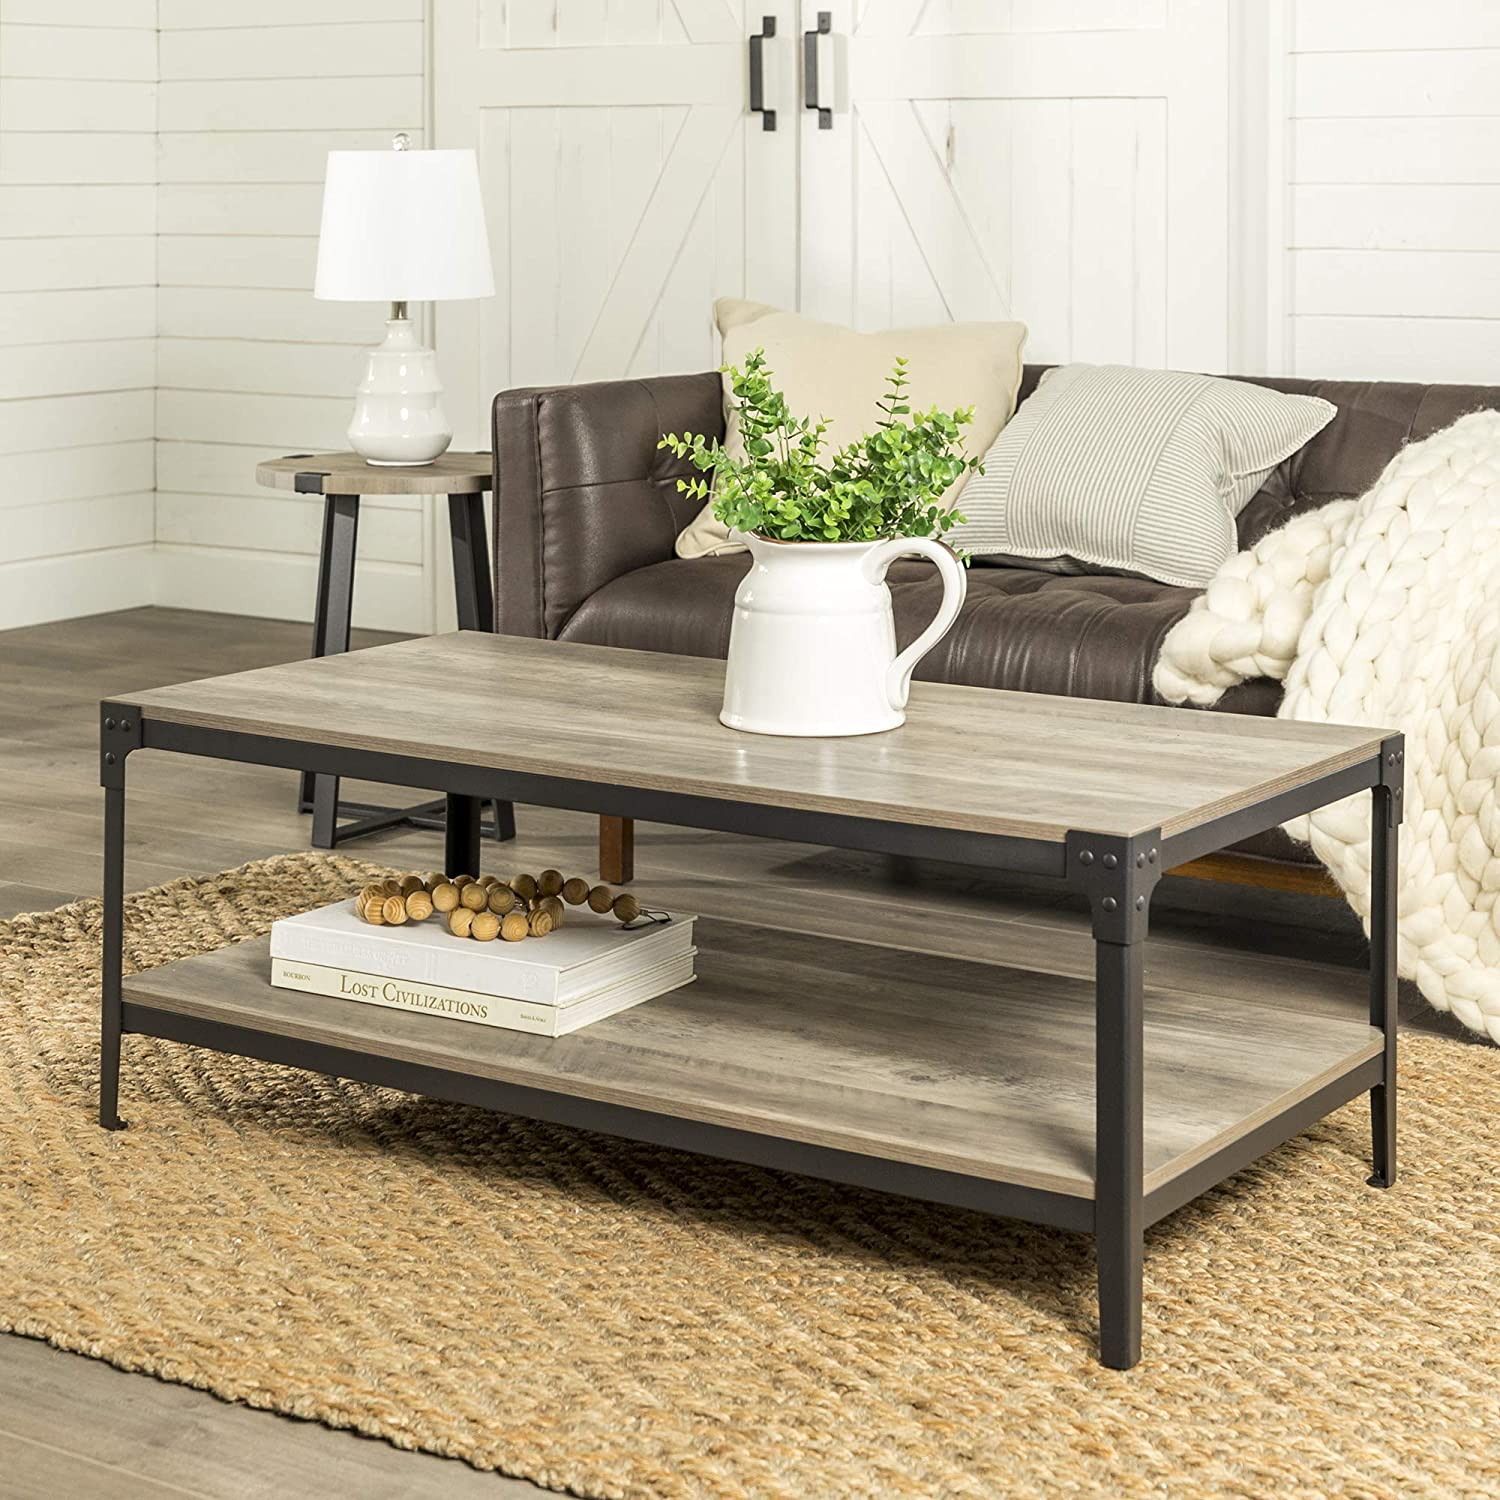 WE Furniture AZ46AICTGW Rustic Farmhouse Coffee Accent Table Living Room,  Set Of 2, Grey